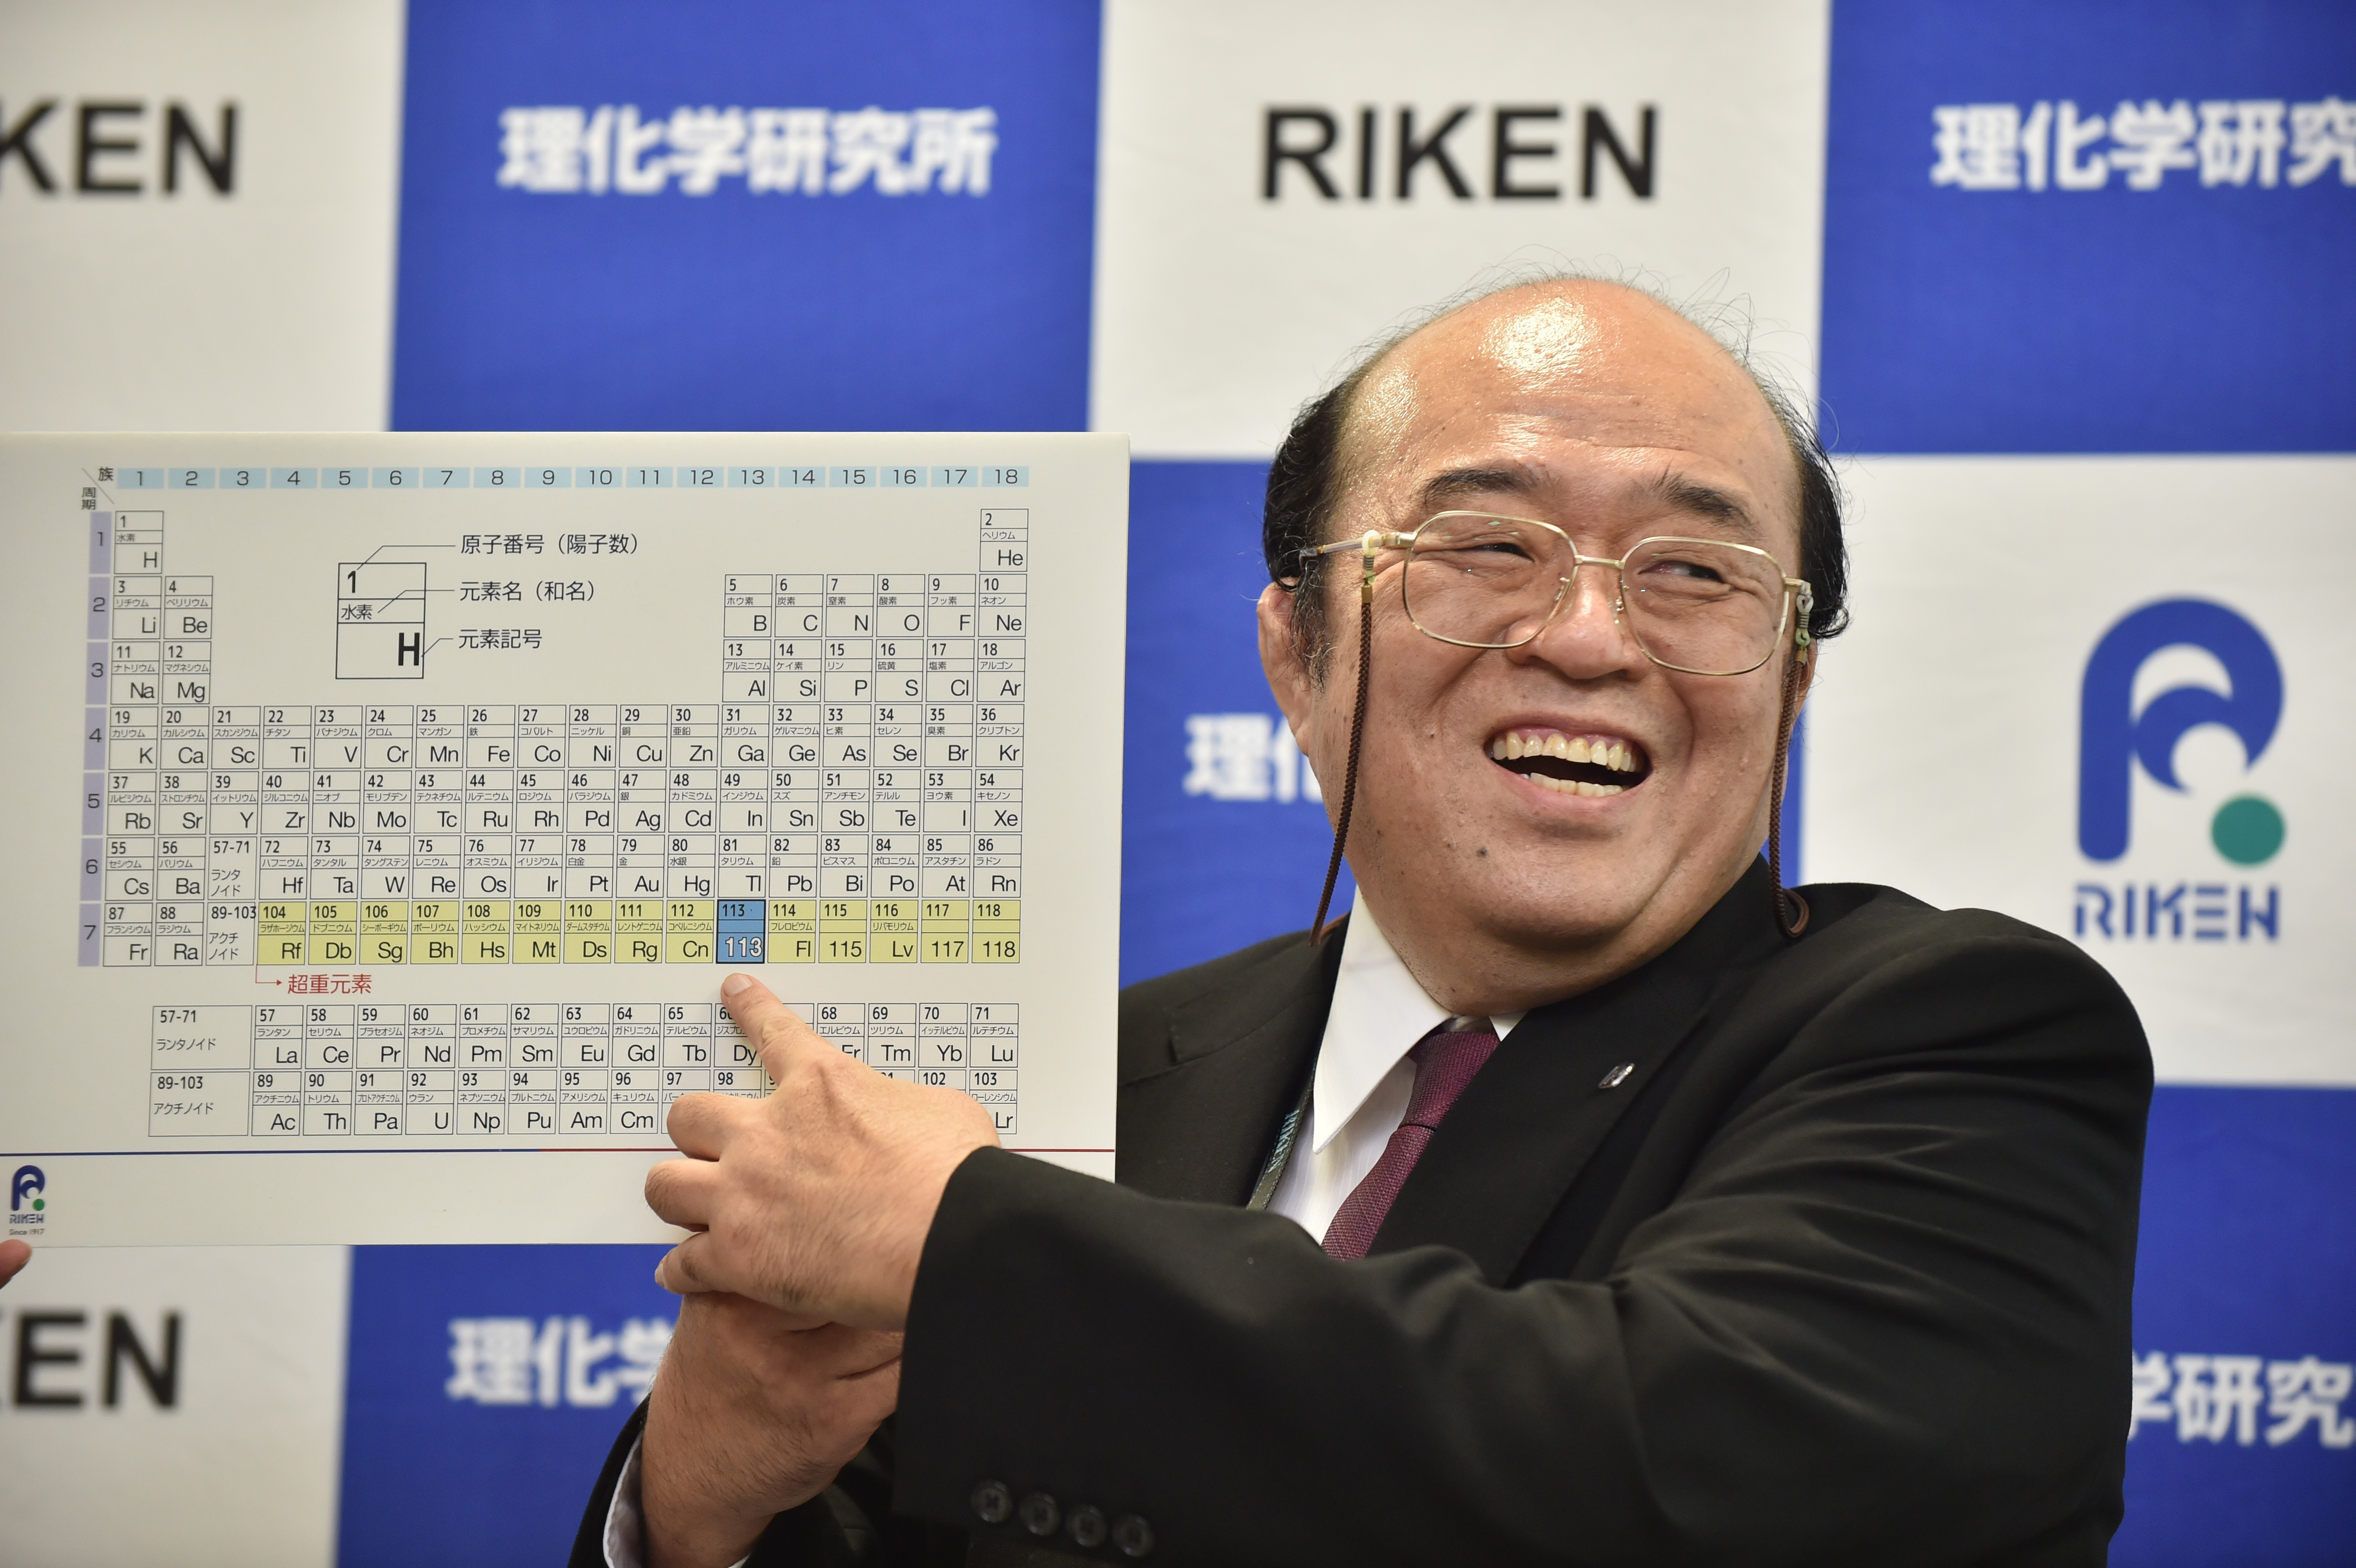 Kosuke Morita, the leader of the Riken team, smiles as he points to a board displaying the new atomic element 113 during a press conference in Wako, Saitama prefecture on December 31, 2015